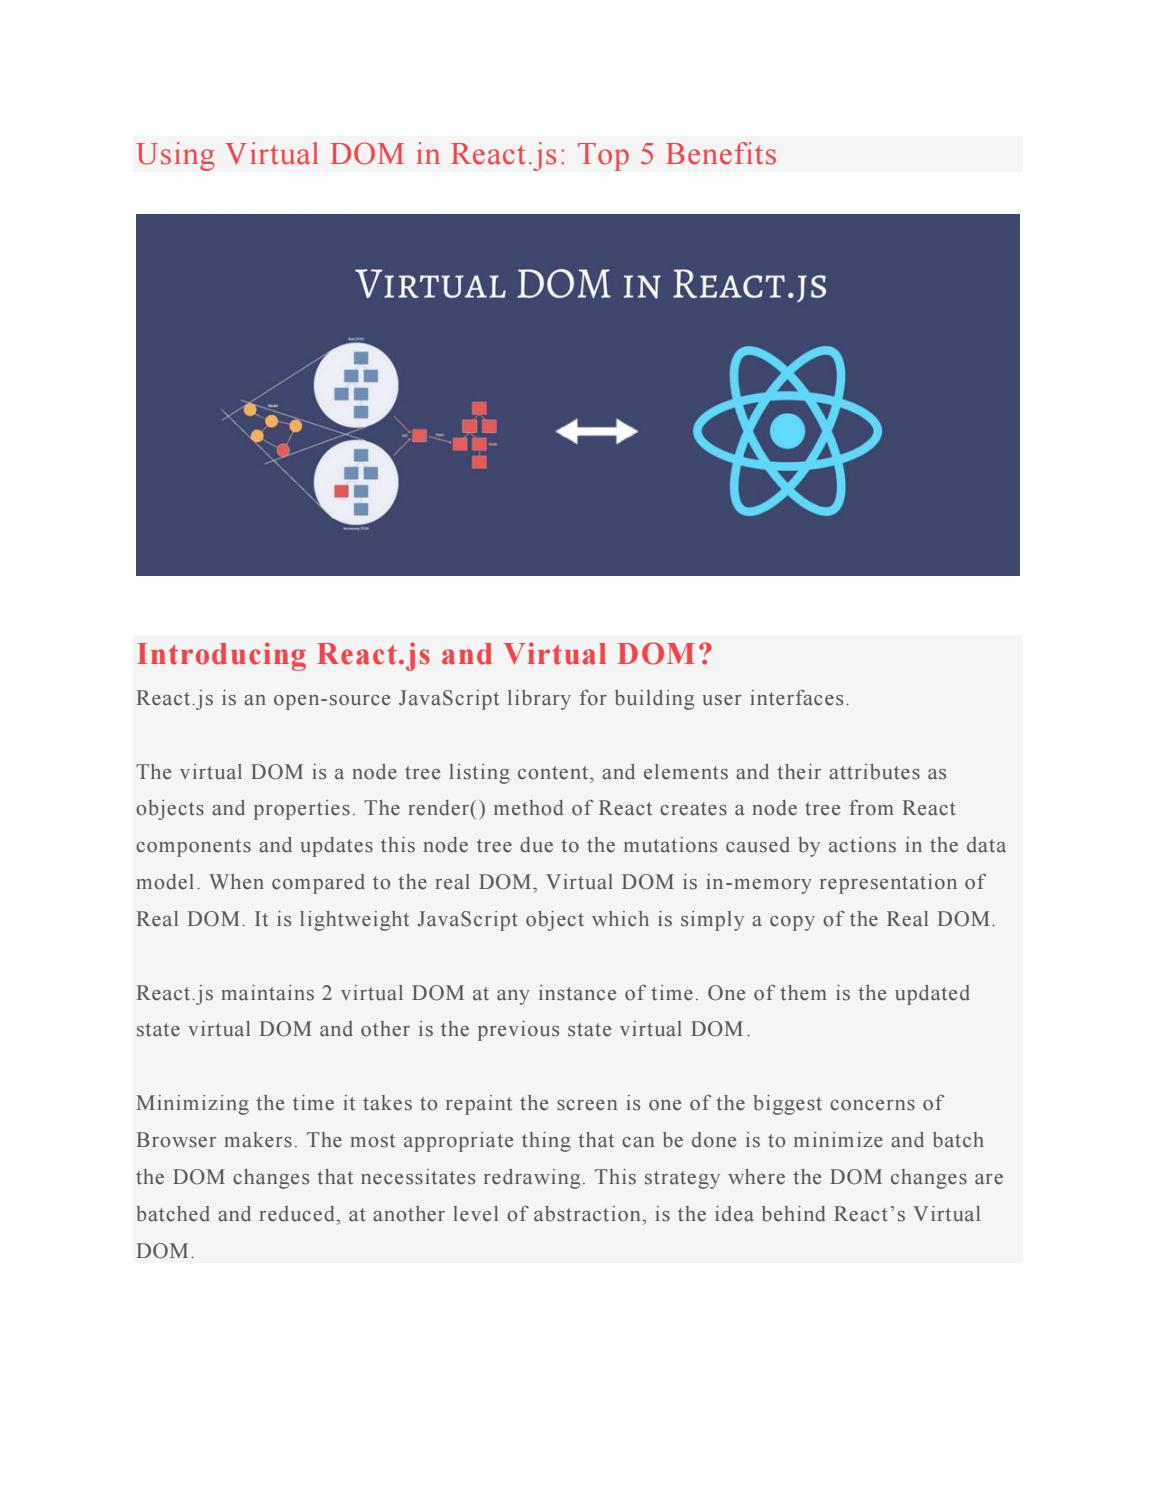 Using virtual dom in react js top 5 benefits by Rigeliets